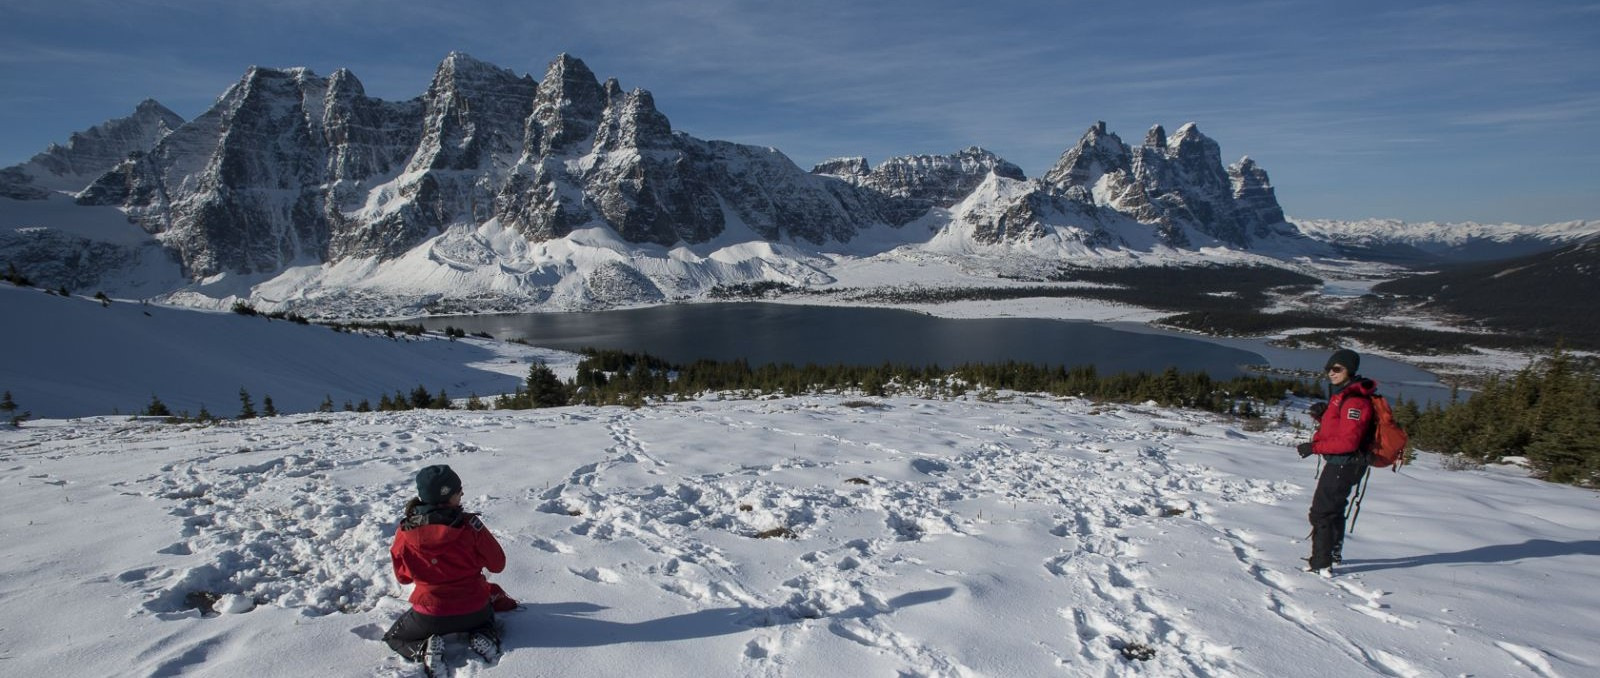 Photo: Parks Canada staff collecting scat samples in Tonquin Valley, taken by Mark Bradley.